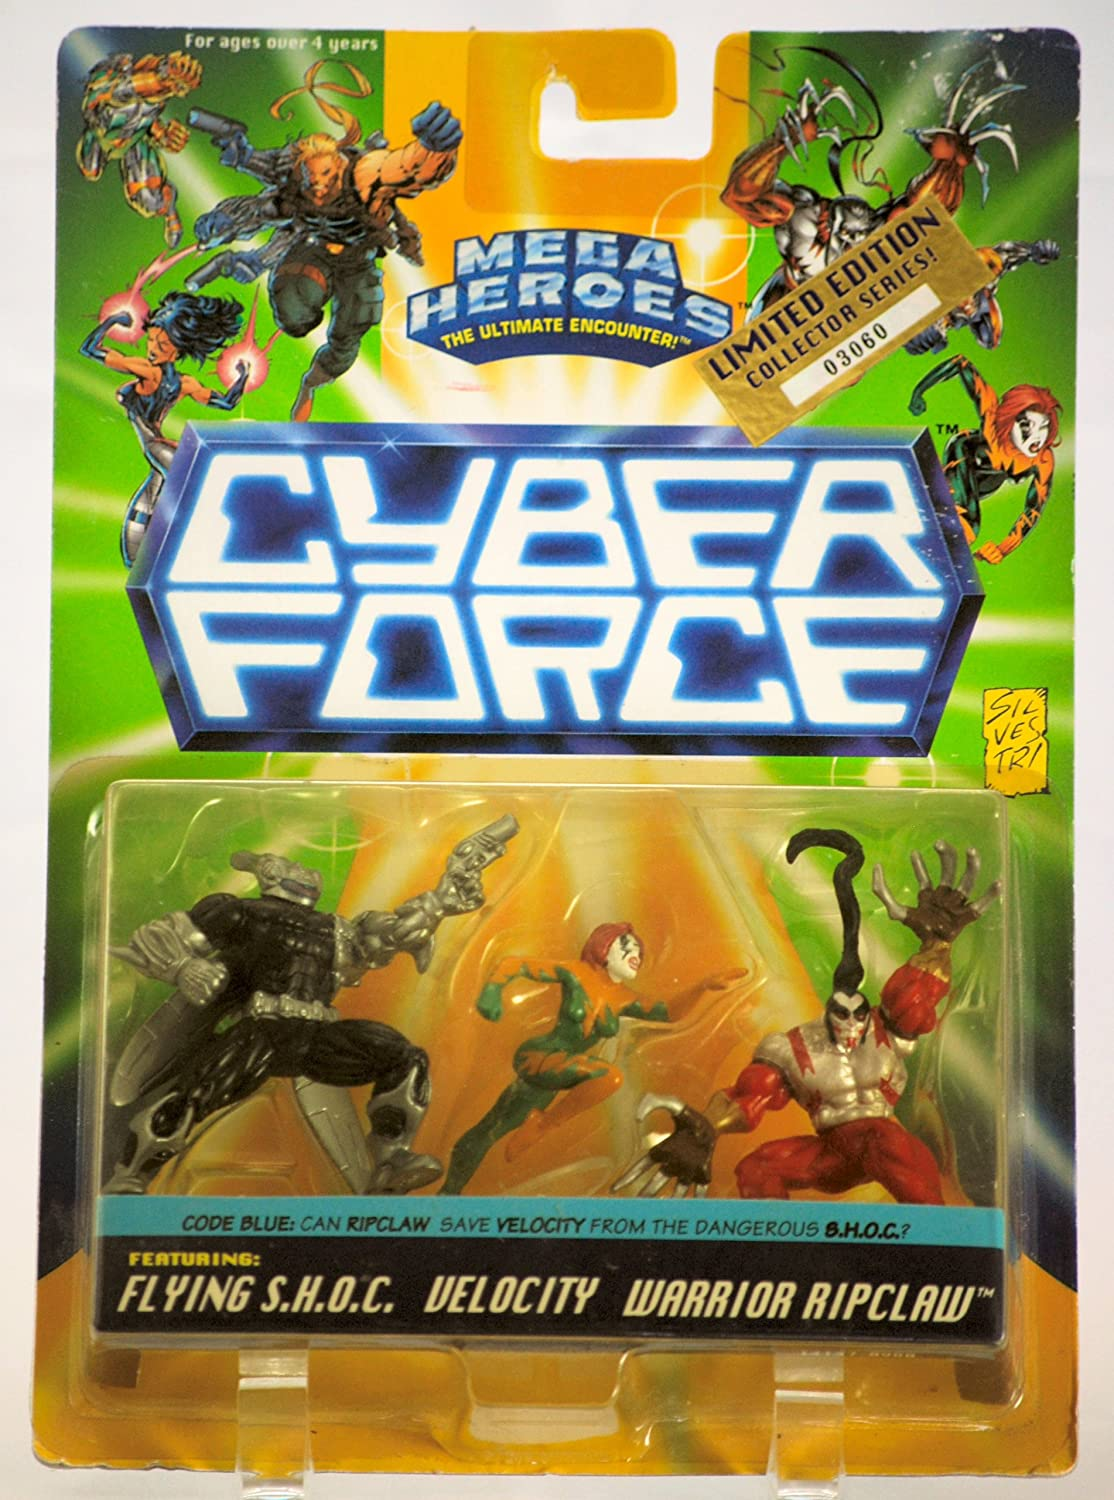 3 Figure Set w// Flying S.H.O.C // Velocity // Warrior Ripclaw 1995 RARE Numbered Action Figure Set Cyber Force #03060 Limited Edition Mega Heroes Mattel // Top Cow MOC Collectible 14137